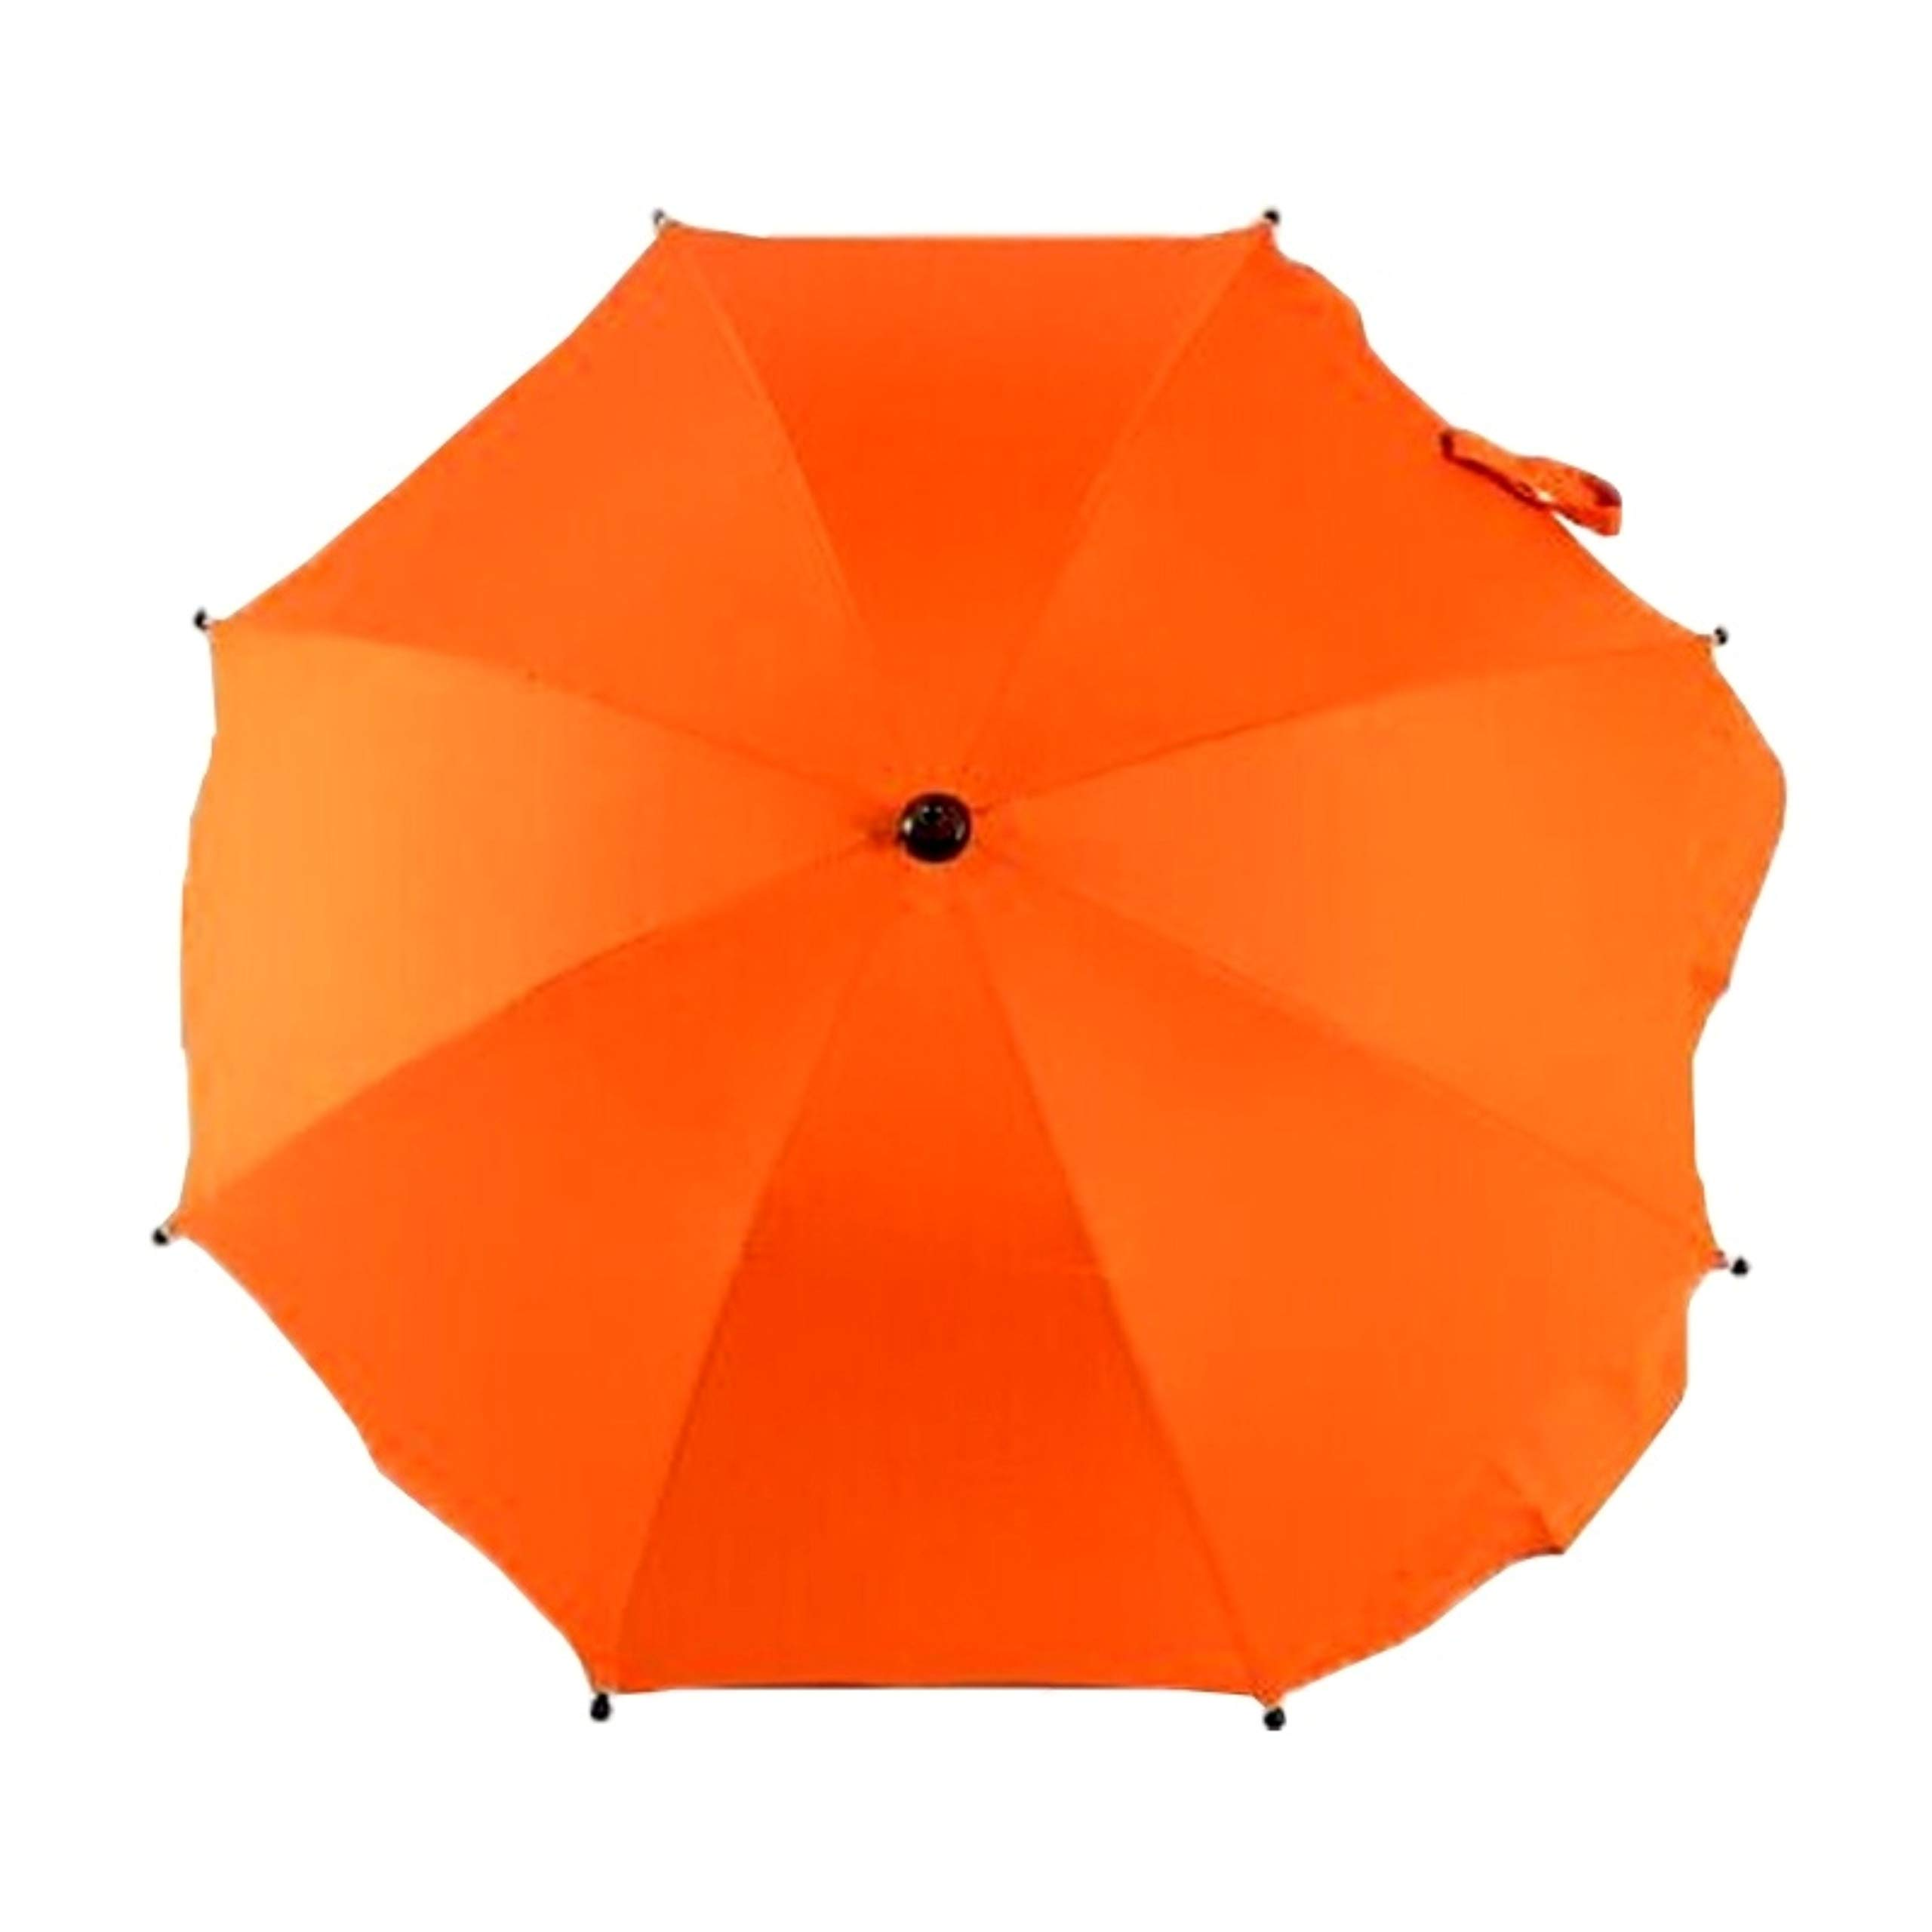 Adjustable Umbrella for Golf Carts, Baby Strollers/Prams and Wheelchairs to Provide Protection from Rain and The Sun(Orange Light)